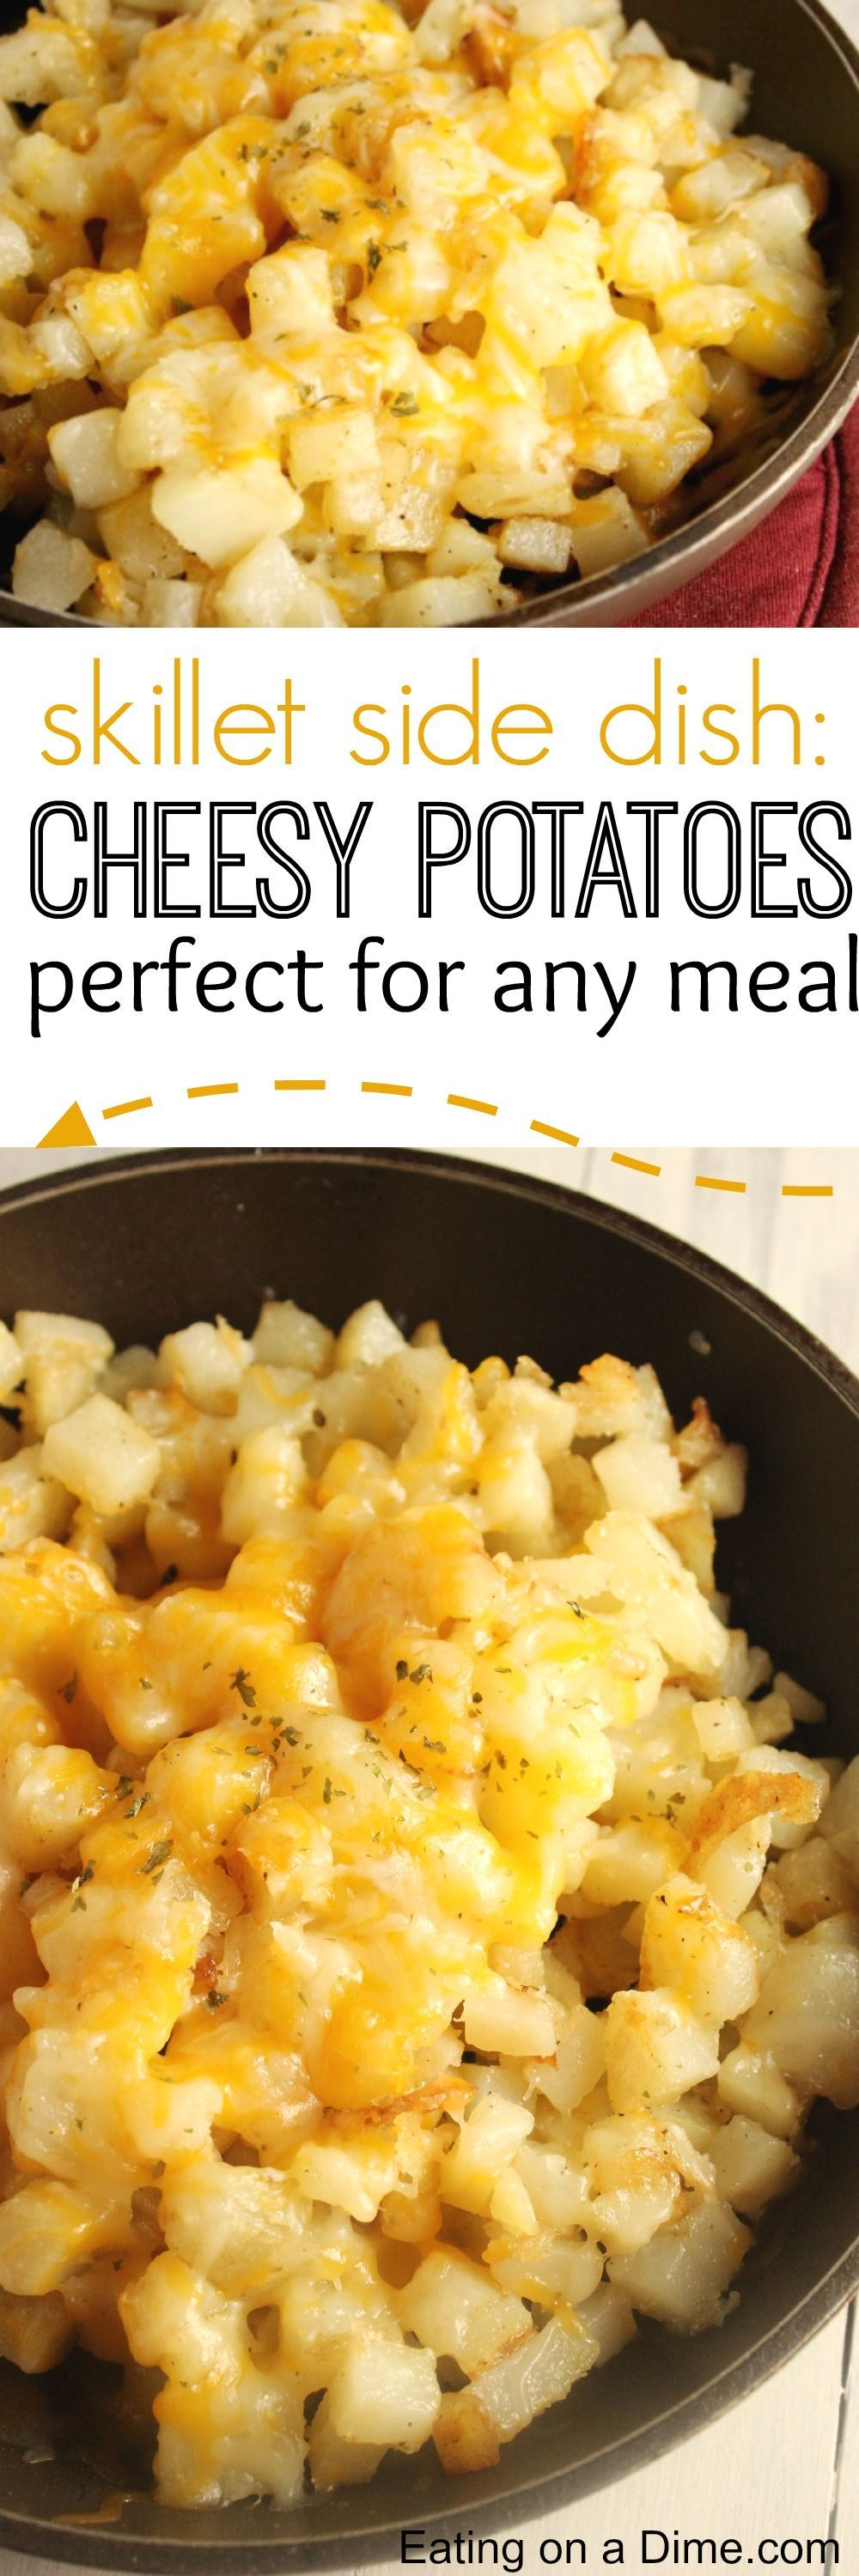 Skillet Potatoes with Cheese How to Fry Potatoes. try this Easy Skillet Potatoes that is smothered in cheese. It tastes amazing and the kids love it!Try Try Try (Julian Cope song)